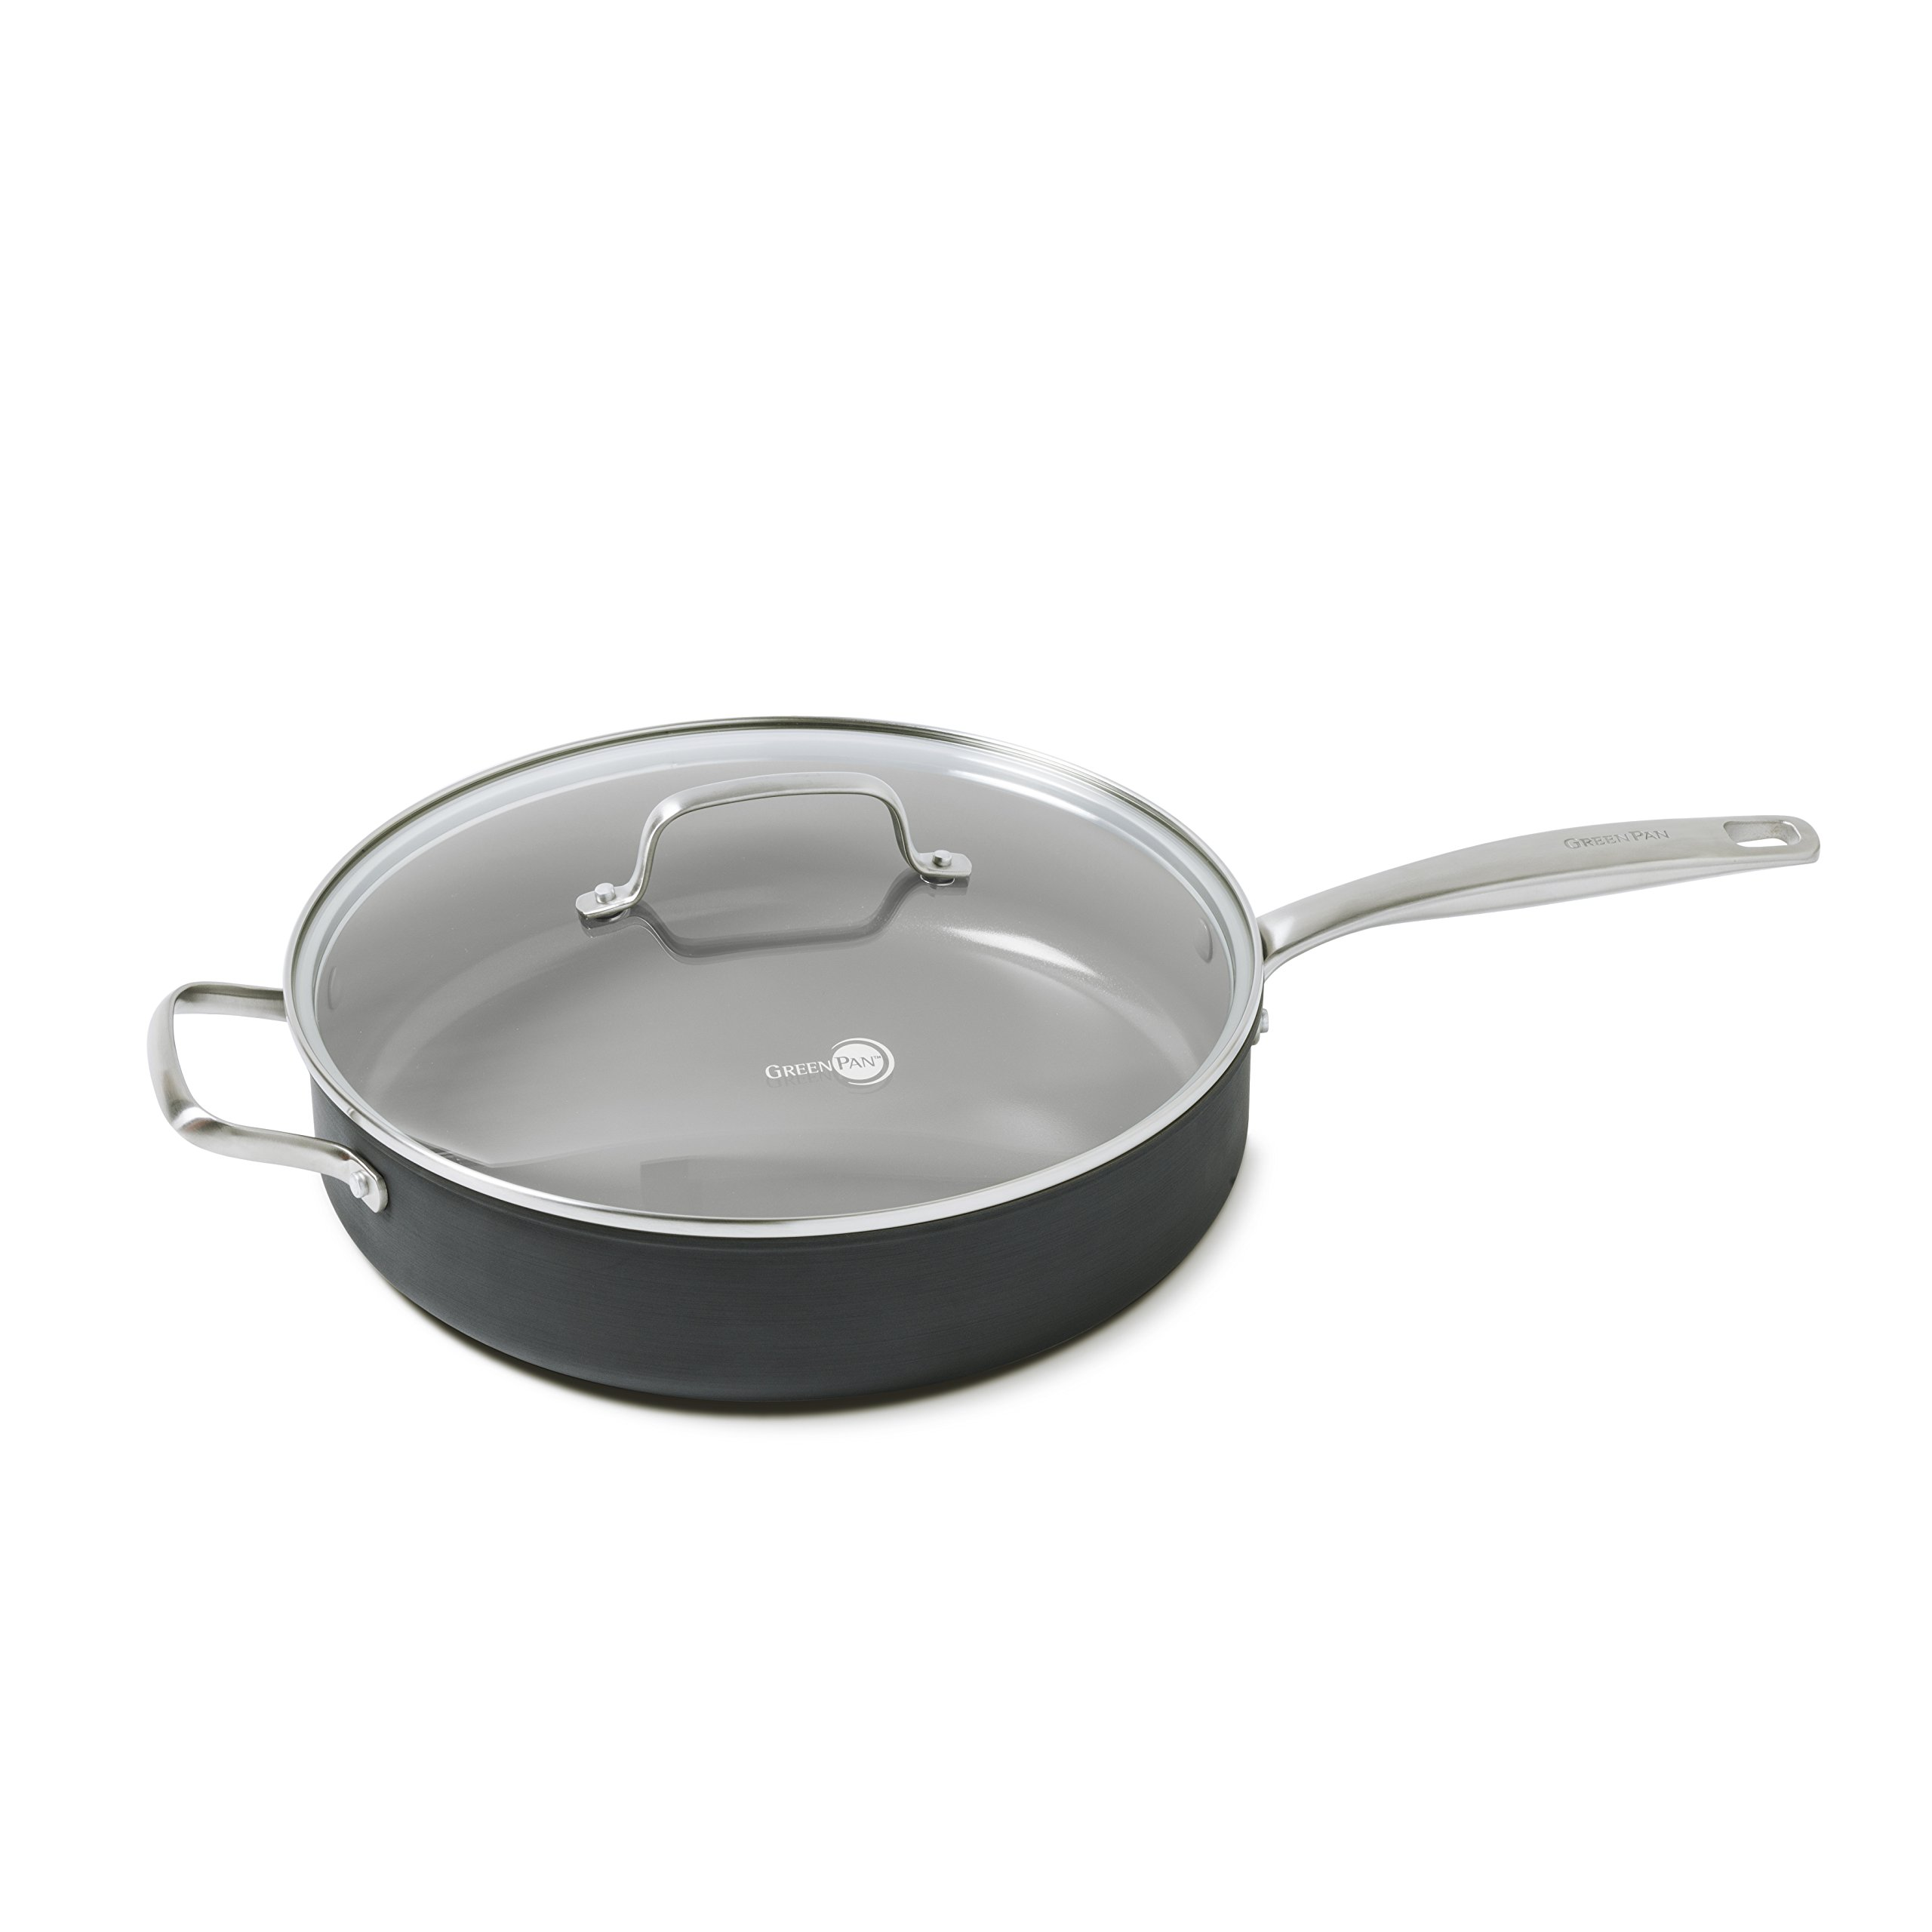 GreenPan CC000123-001 GreenPan Chatham 5QT Ceramic Non-Stick Covered Saute Pan with Handle Helper, Grey, 5 quart